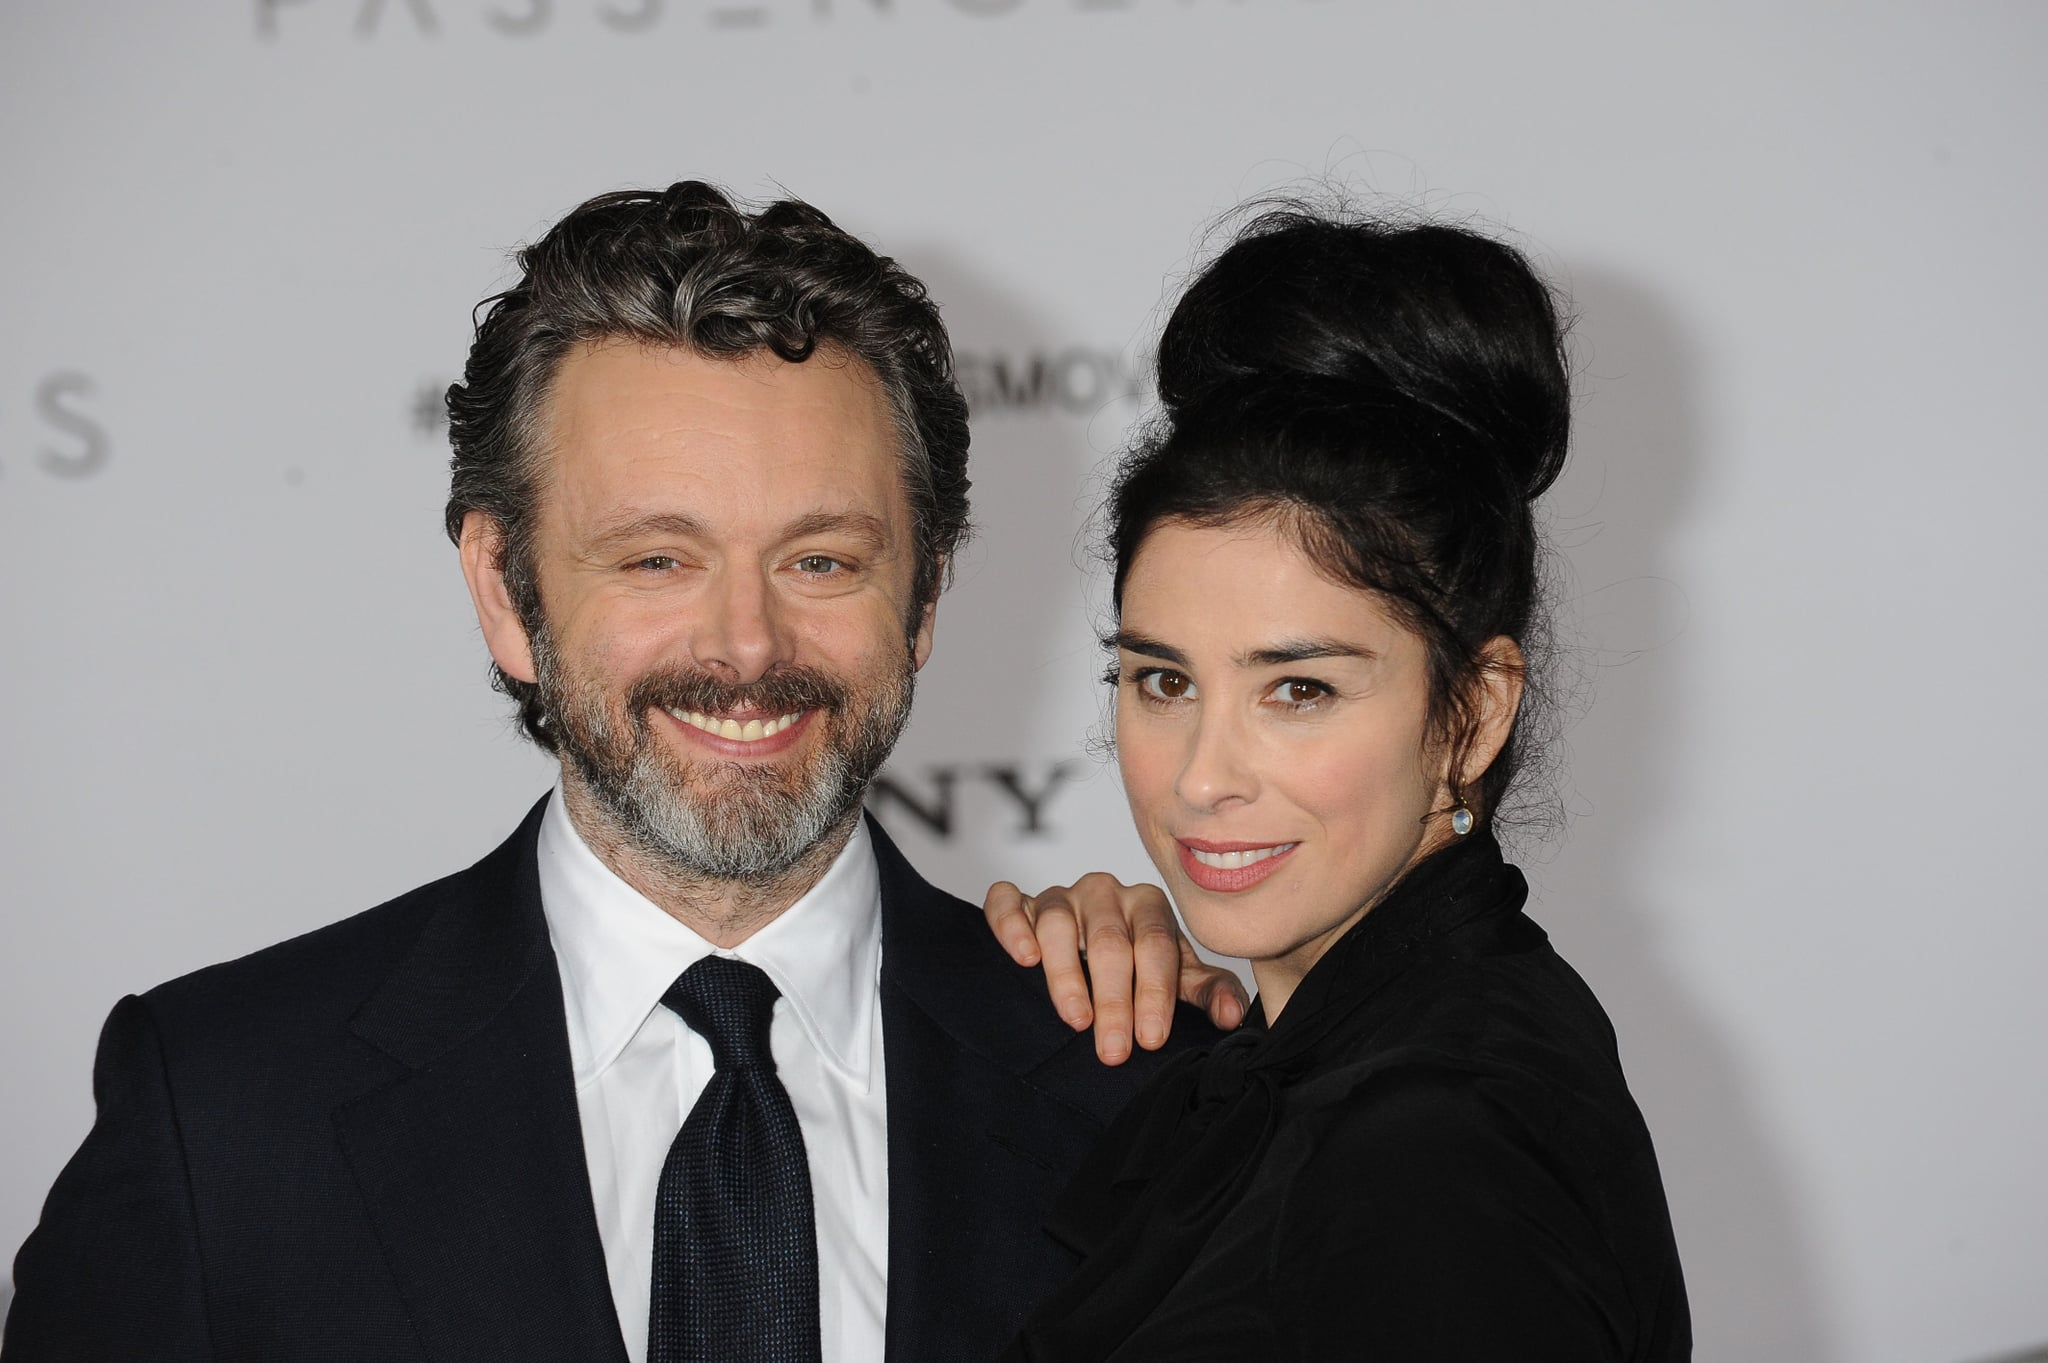 Sarah Silverman Hilariously Announces Breakup With Michael Sheen